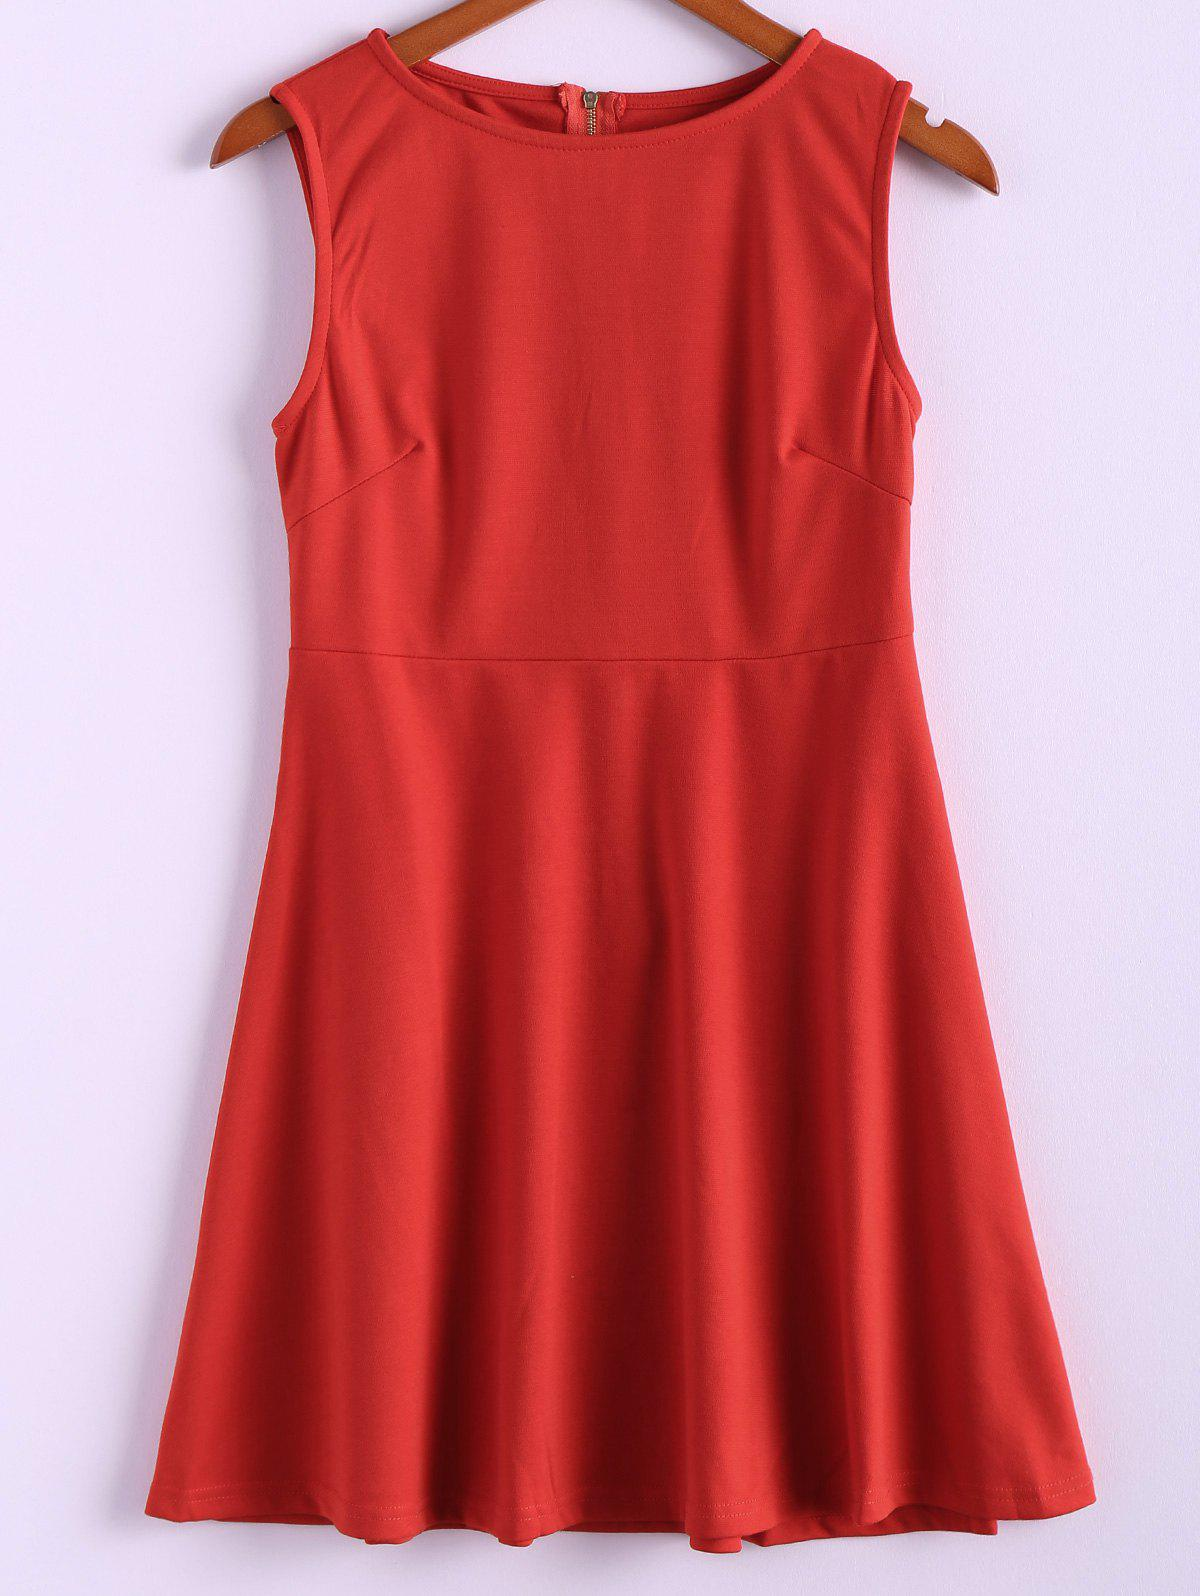 Mini High Waist A Line Skater Dress - RED M